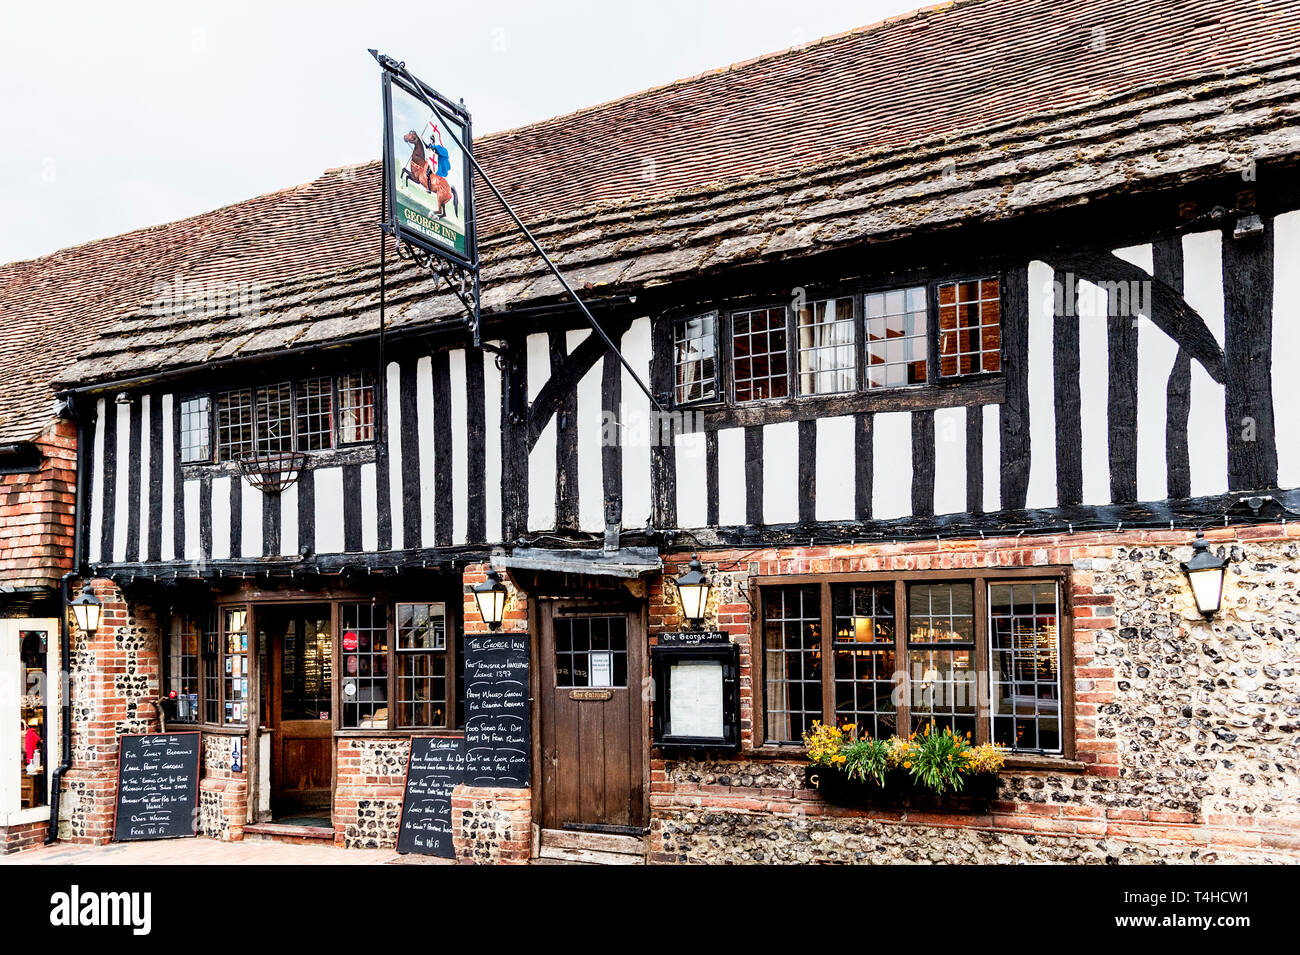 Alfriston (Sussex, England): Highstreet – shops and restaurant Stock Photo